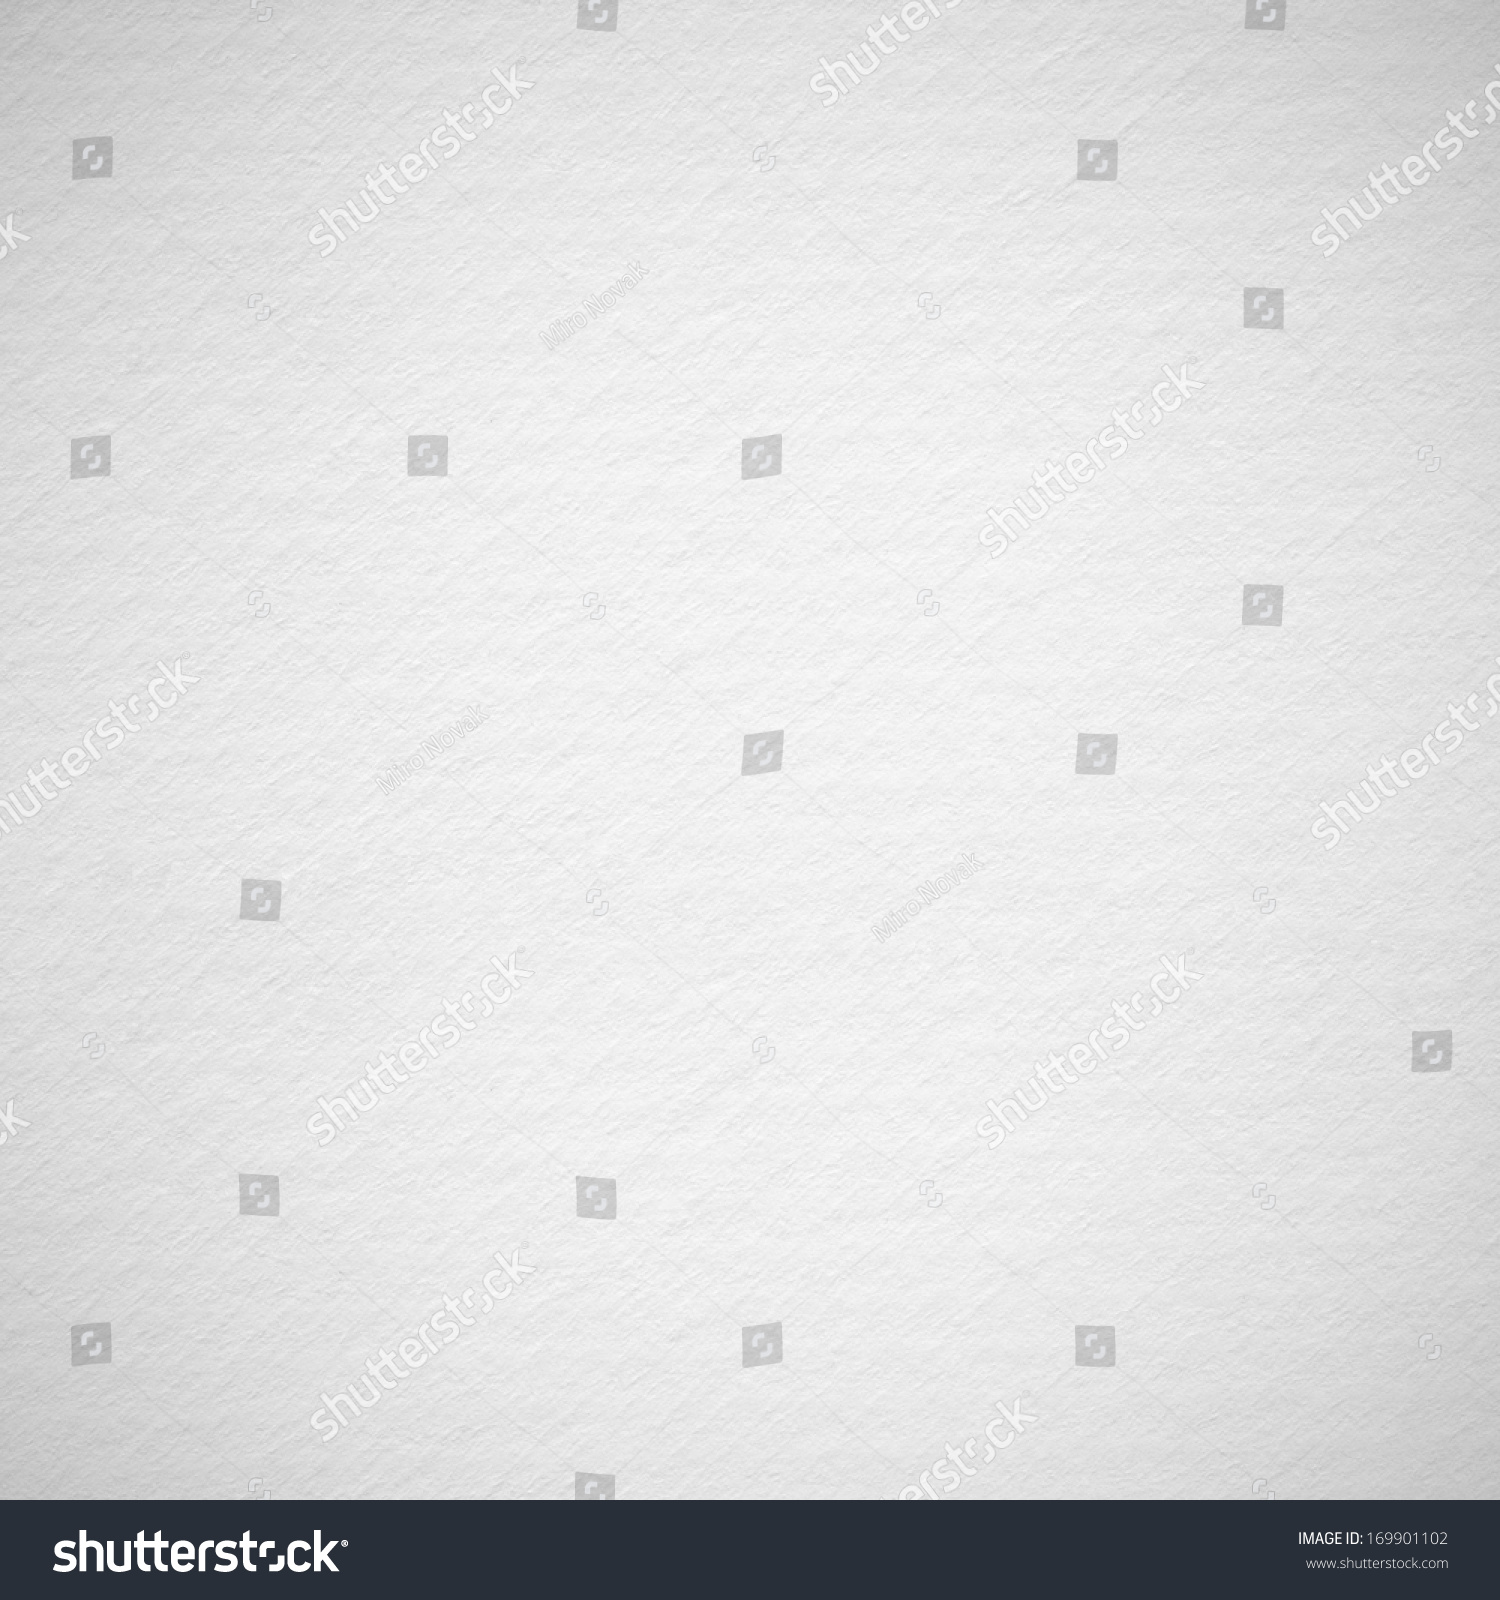 Royalty-free White paper background or rough pattern ...